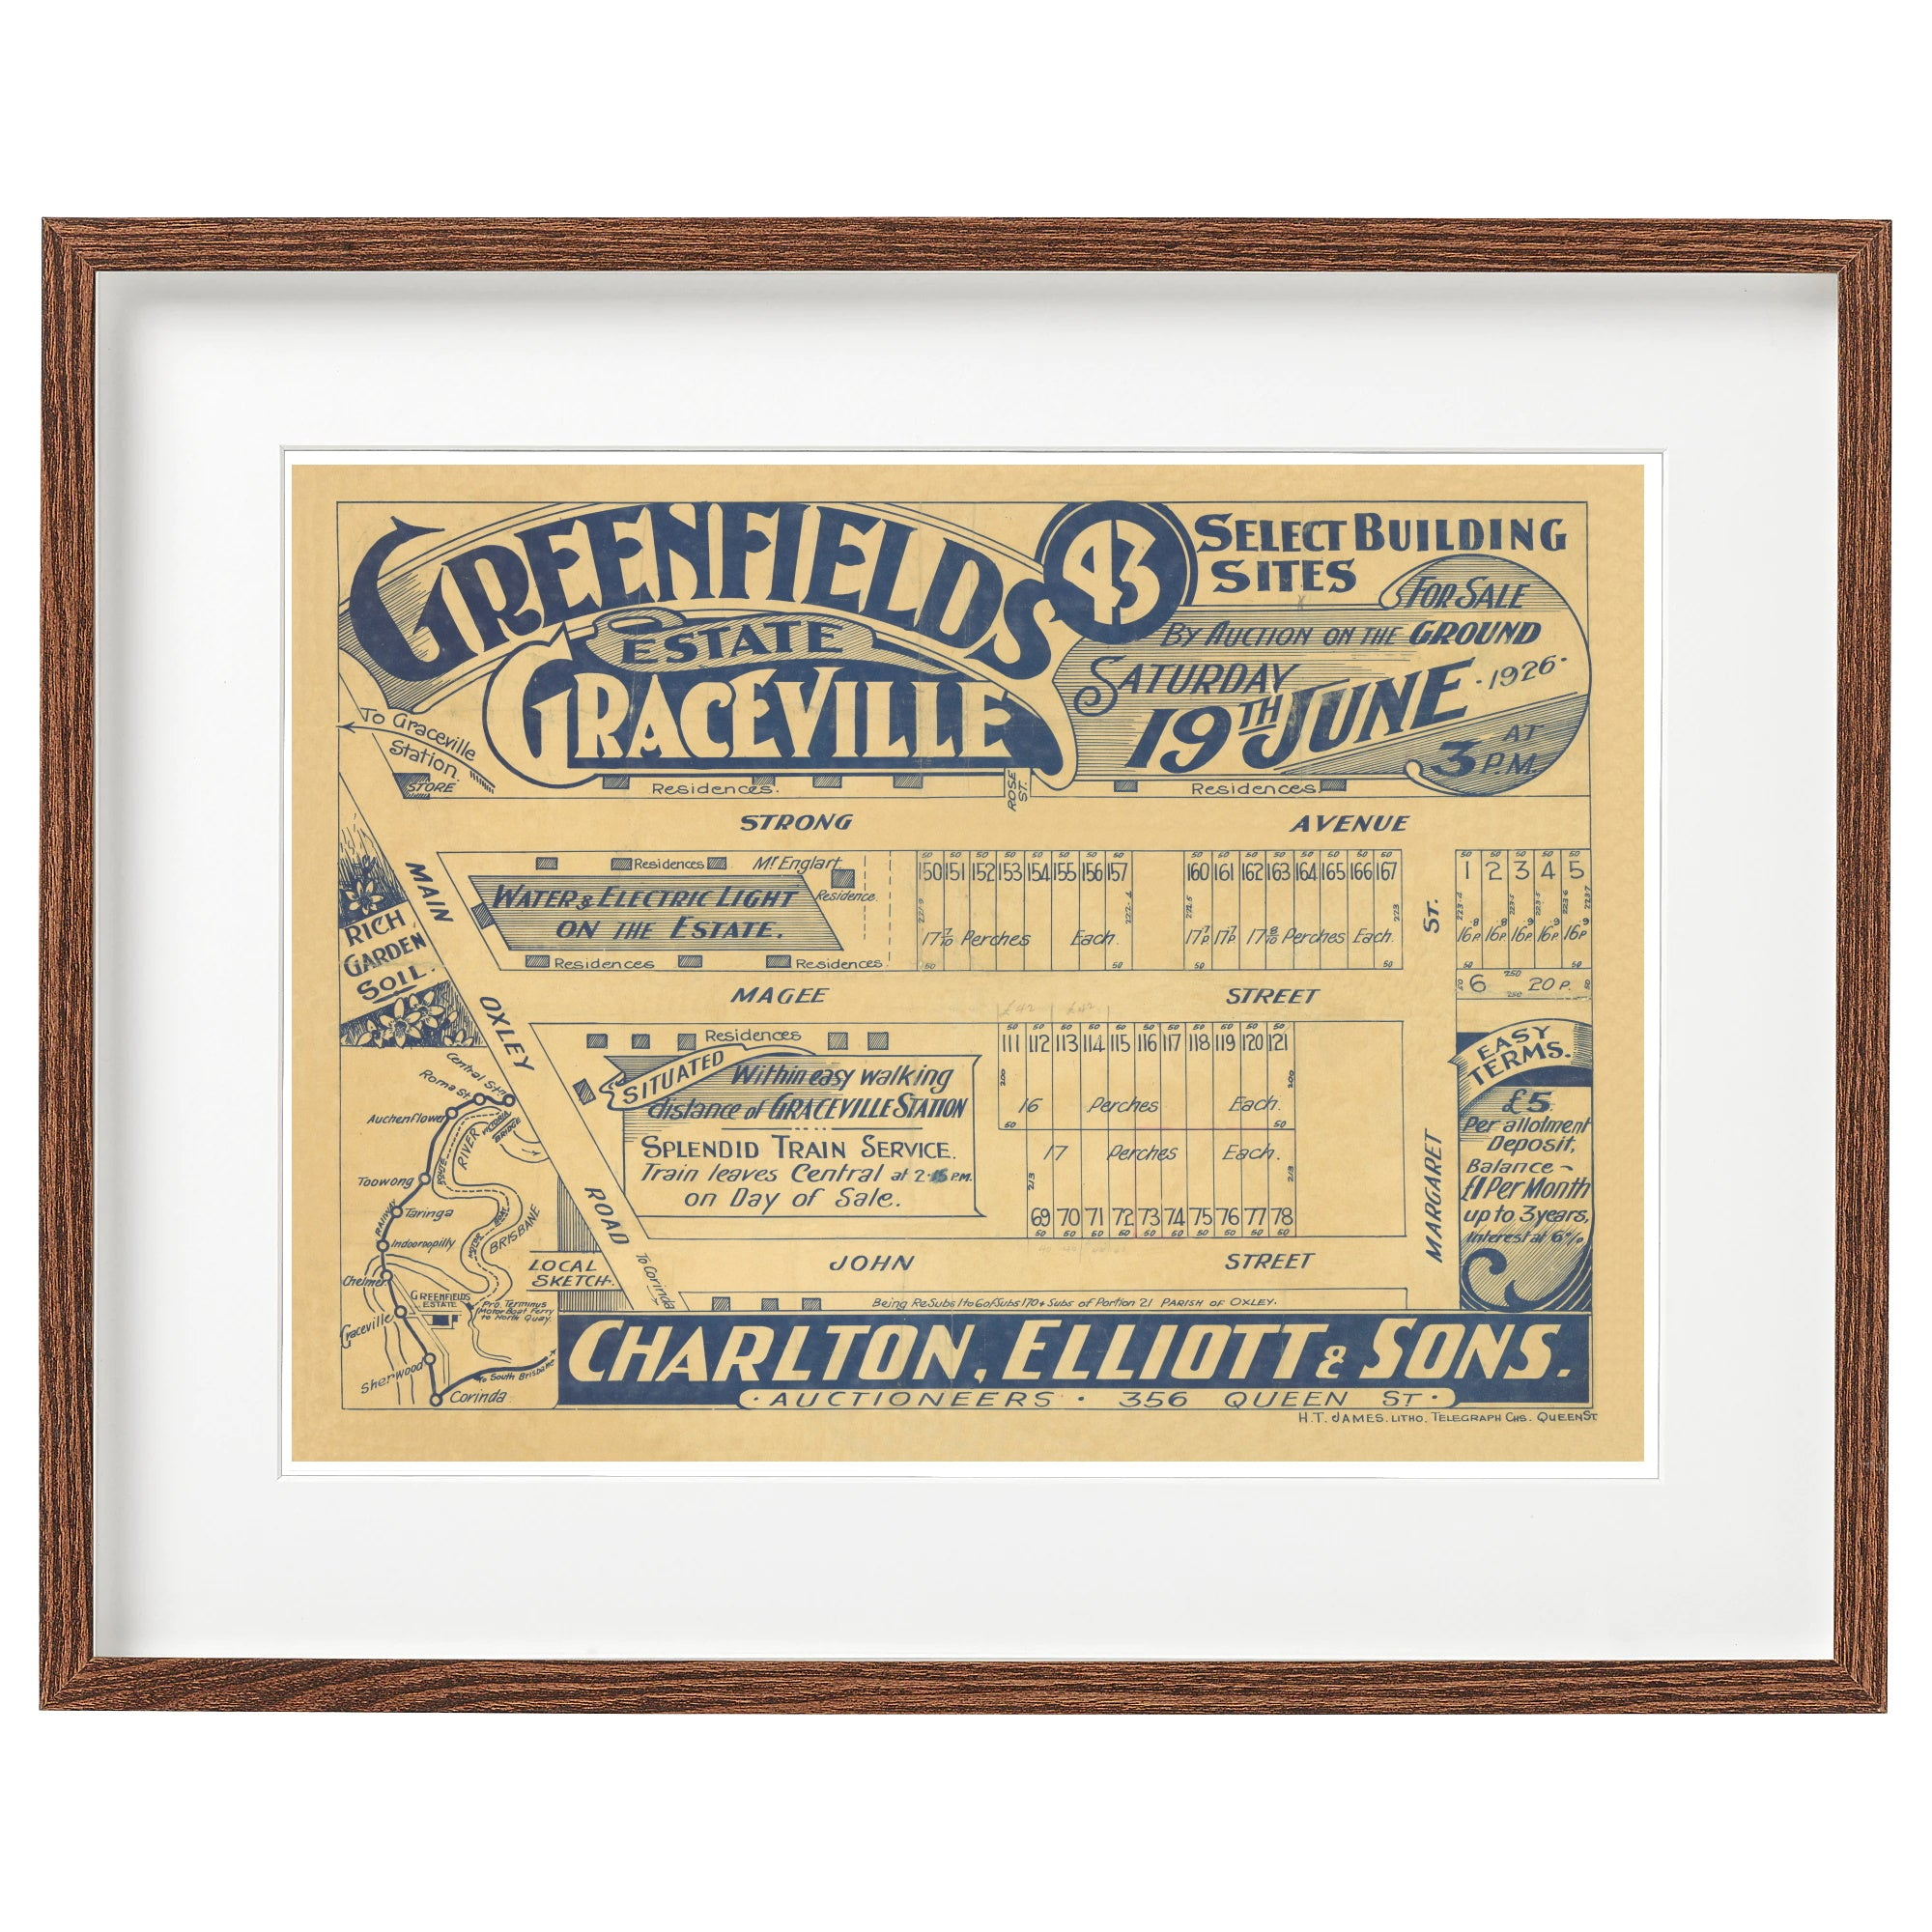 1926 Graceville - Greenfields Estate